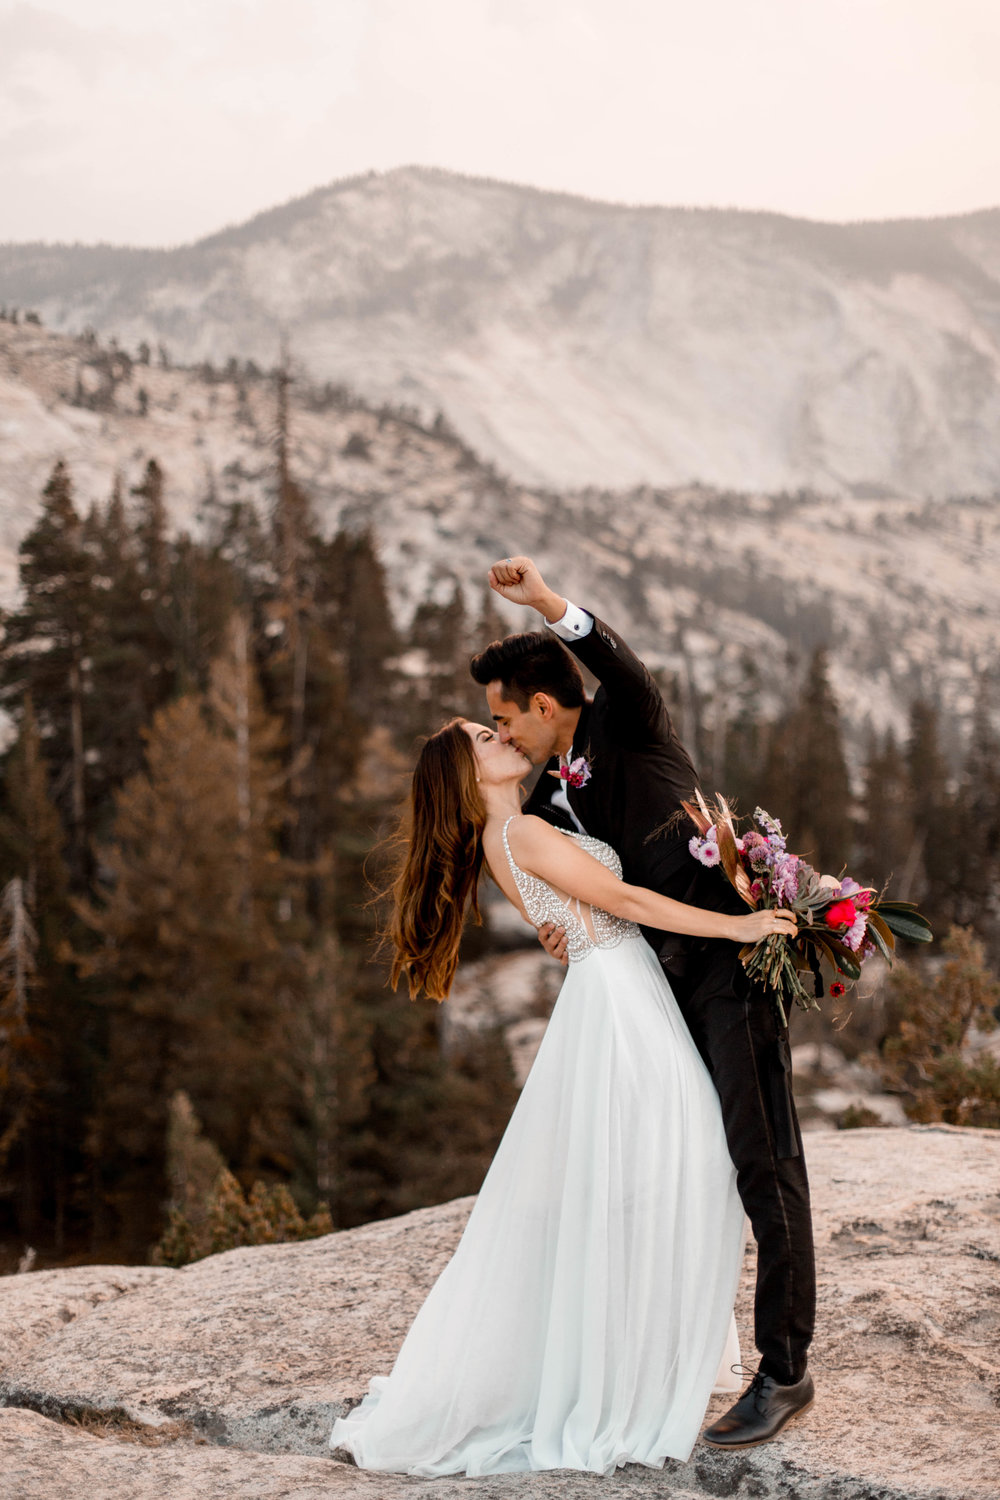 nicole-daacke-photography-yosemite-national-park-wedding-sunset-elopement-olmstead-point-yosemite-adventure-wedding-photographer-adventurous-elopement-destination-wedding-national-park-wedding-photography-2039.jpg